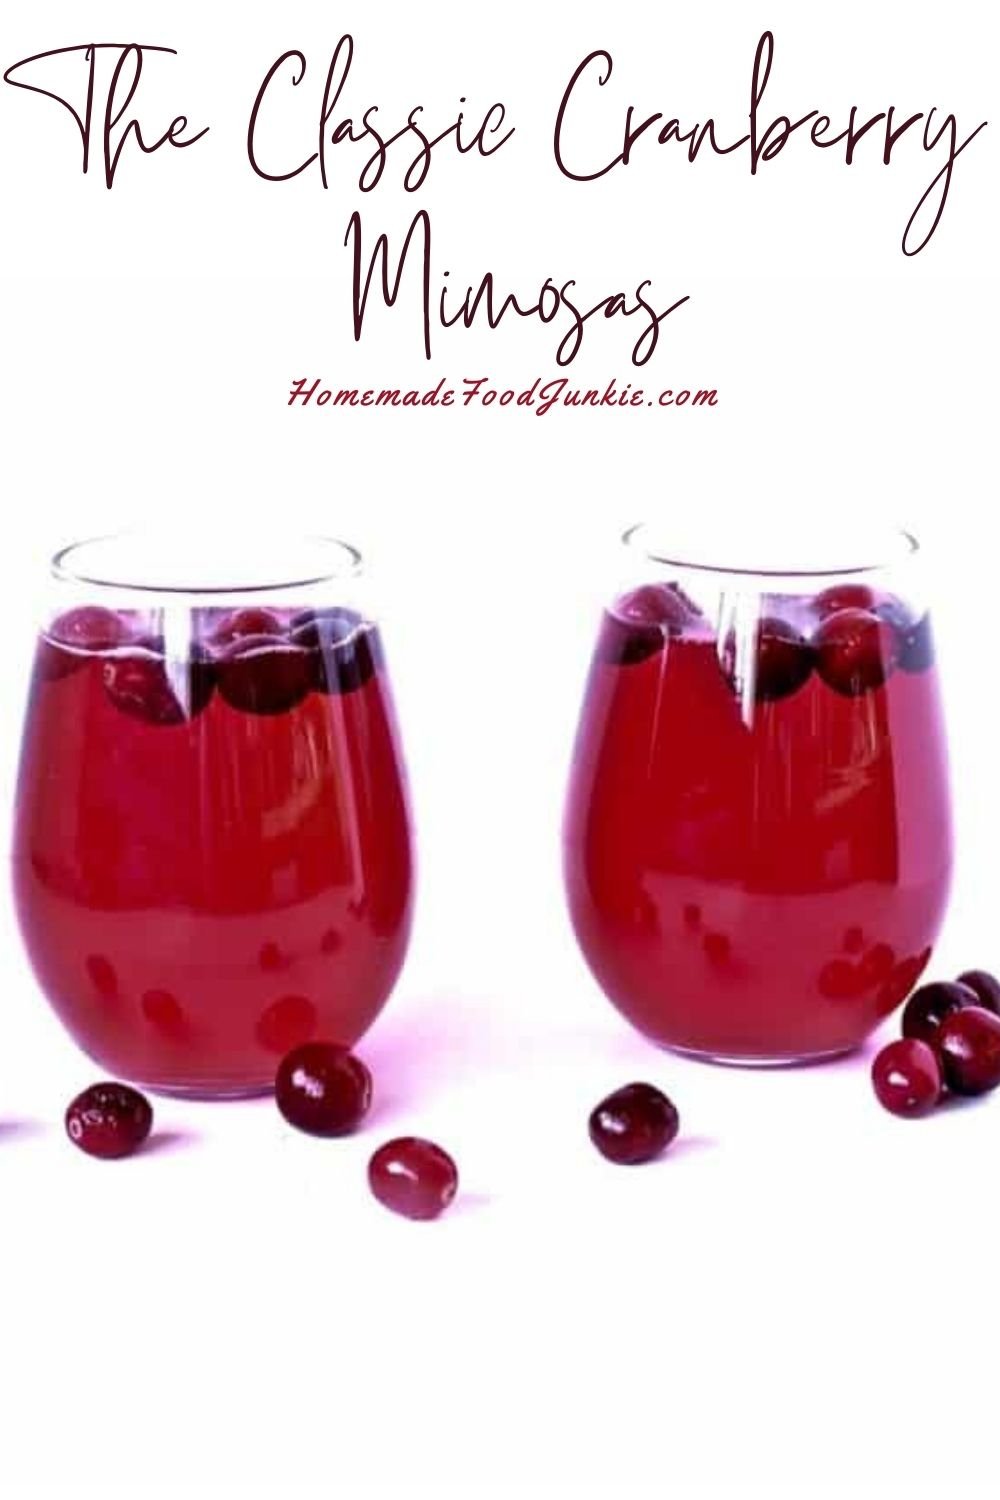 The classic cranberry mimosas-pin image